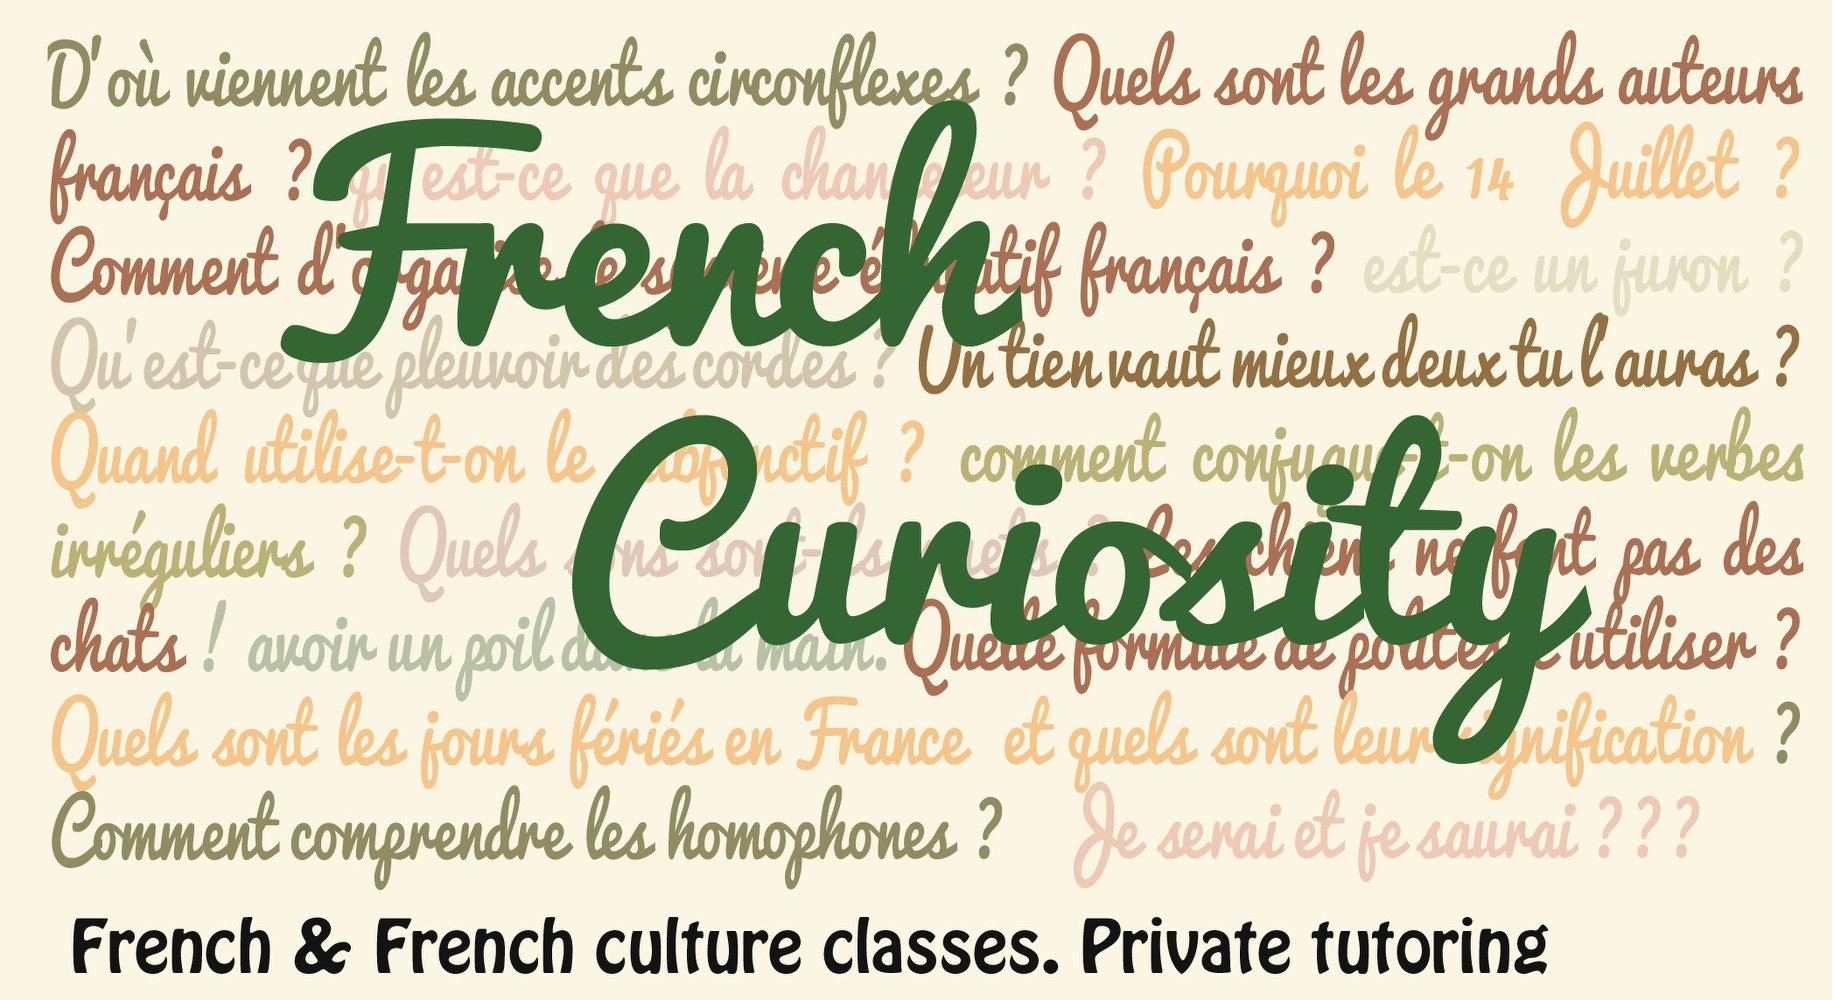 French Curiosity